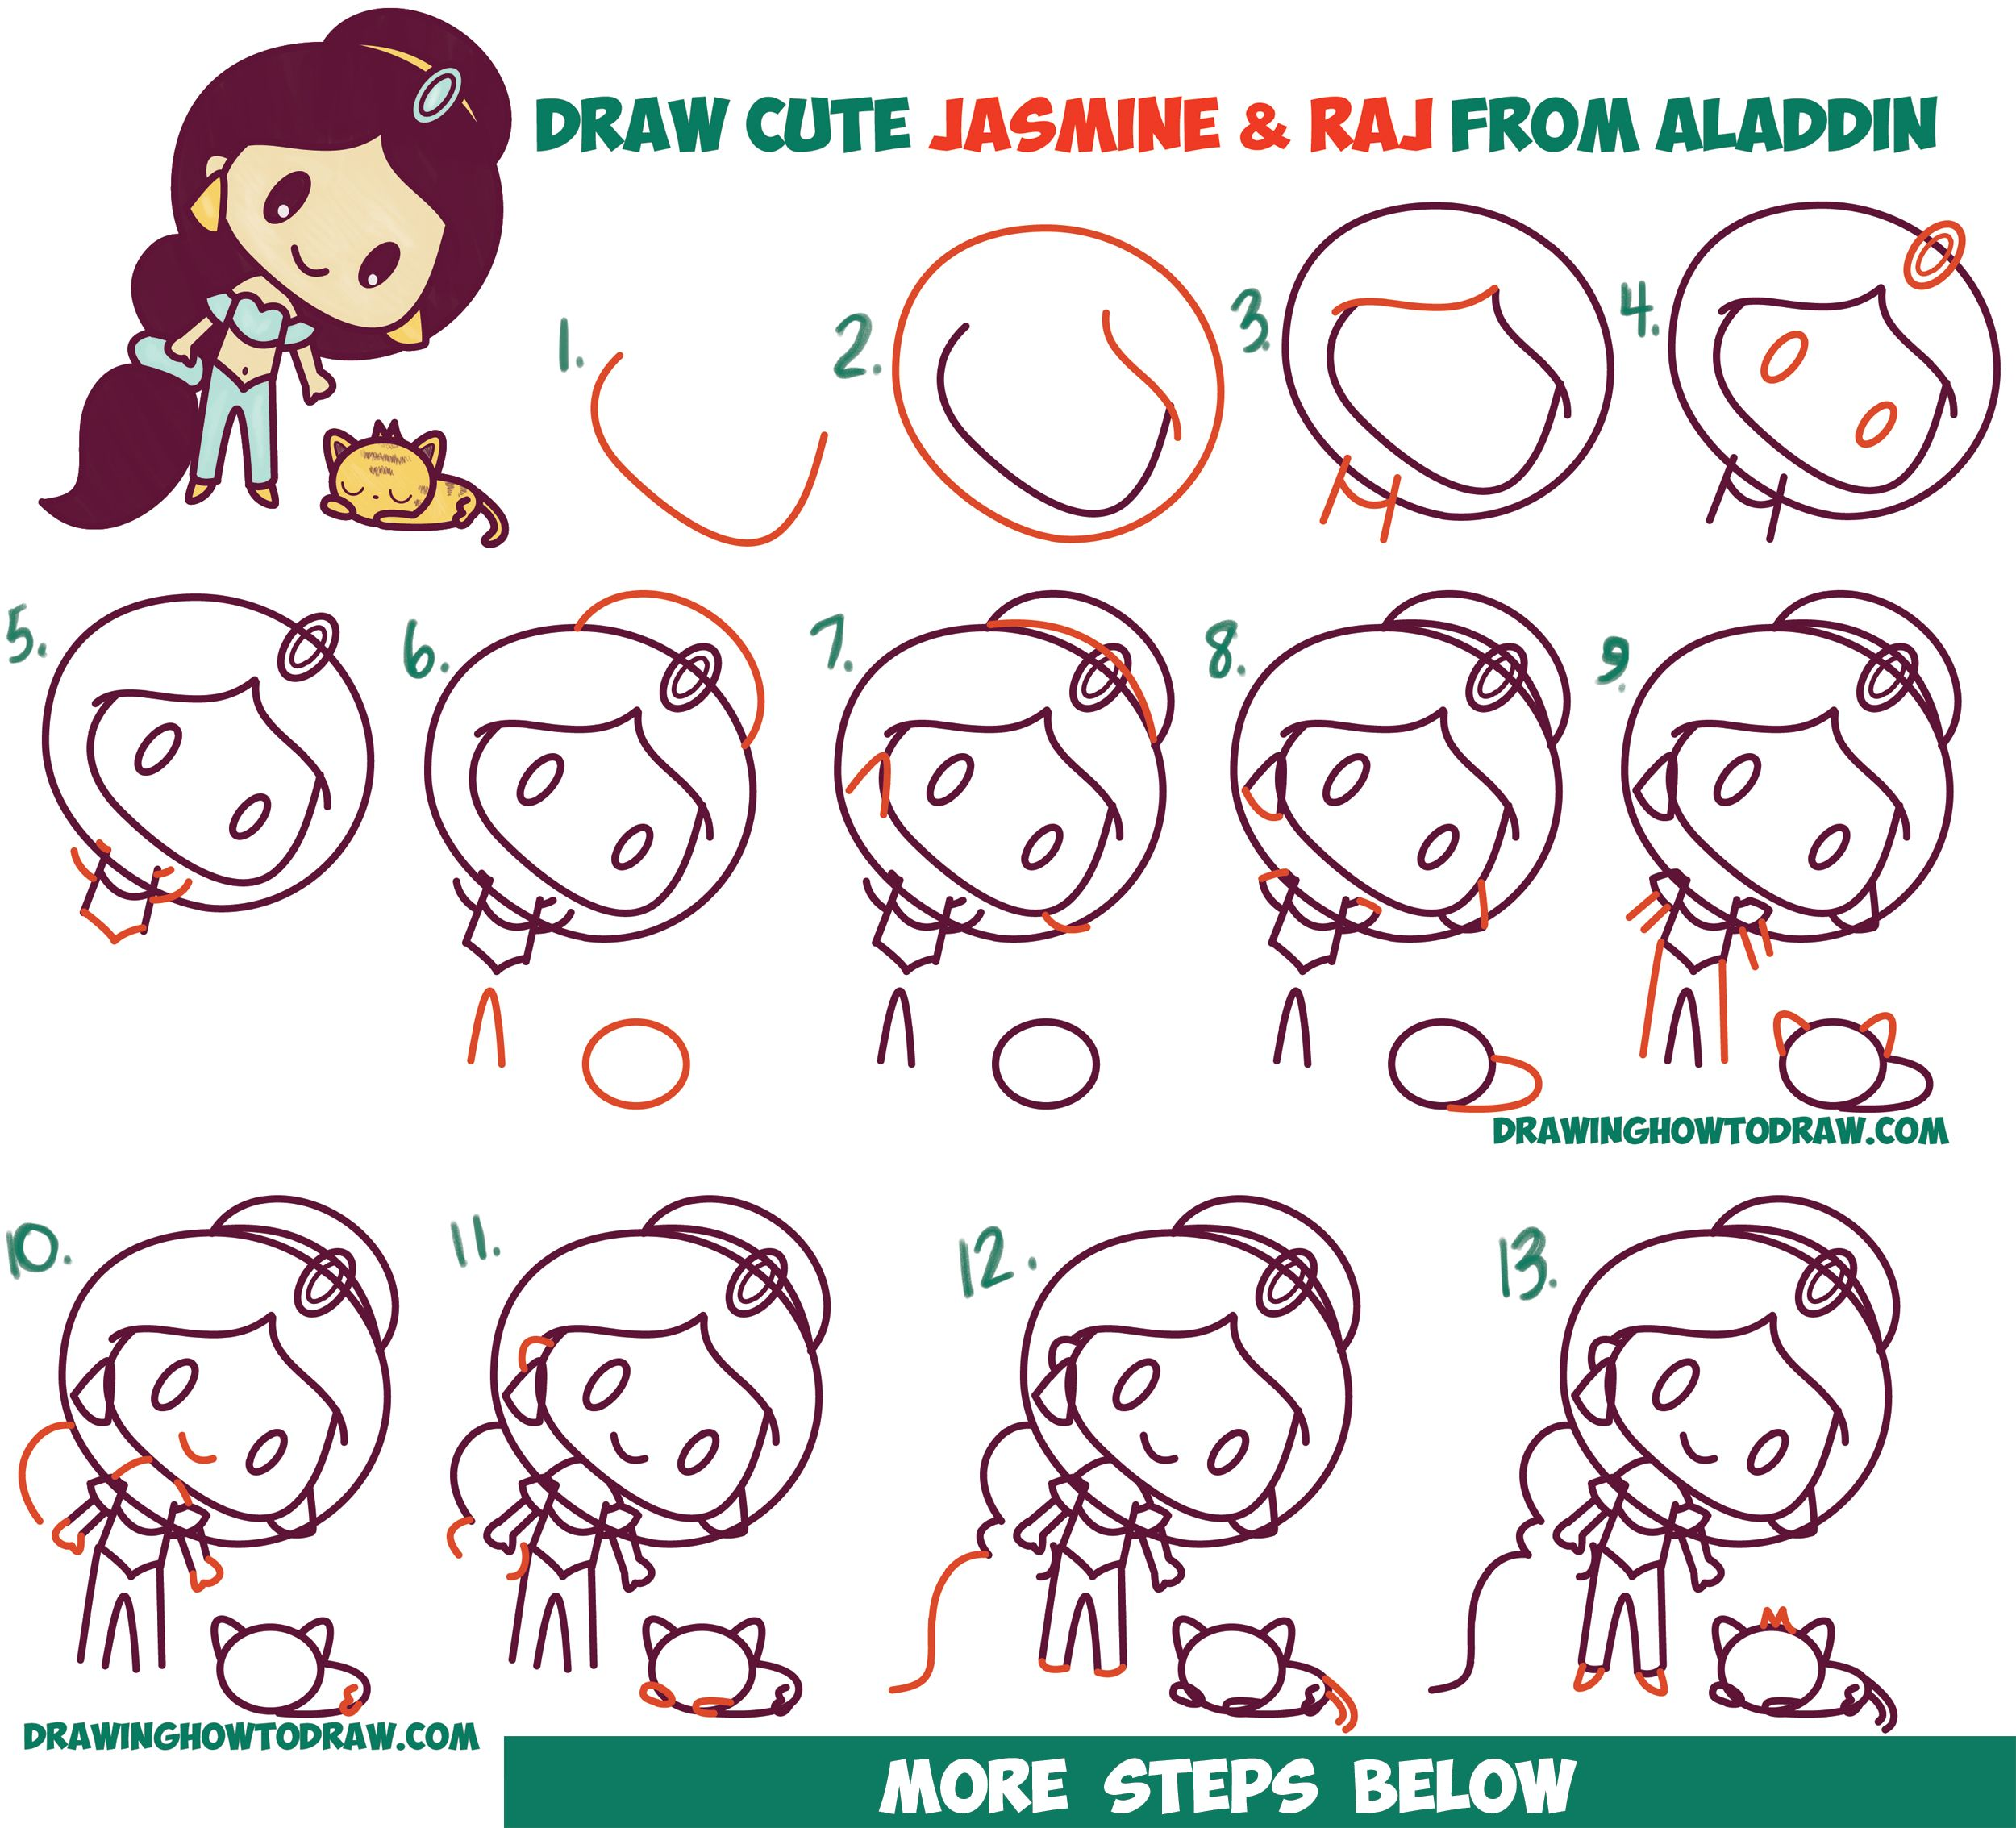 How To Draw Cute Chibi Kawaii Jasmine Raj The Tiger From Aladdin With Easy Step By Step Drawing Tutorial For Kids How To Draw Step By Step Drawing Tutoria